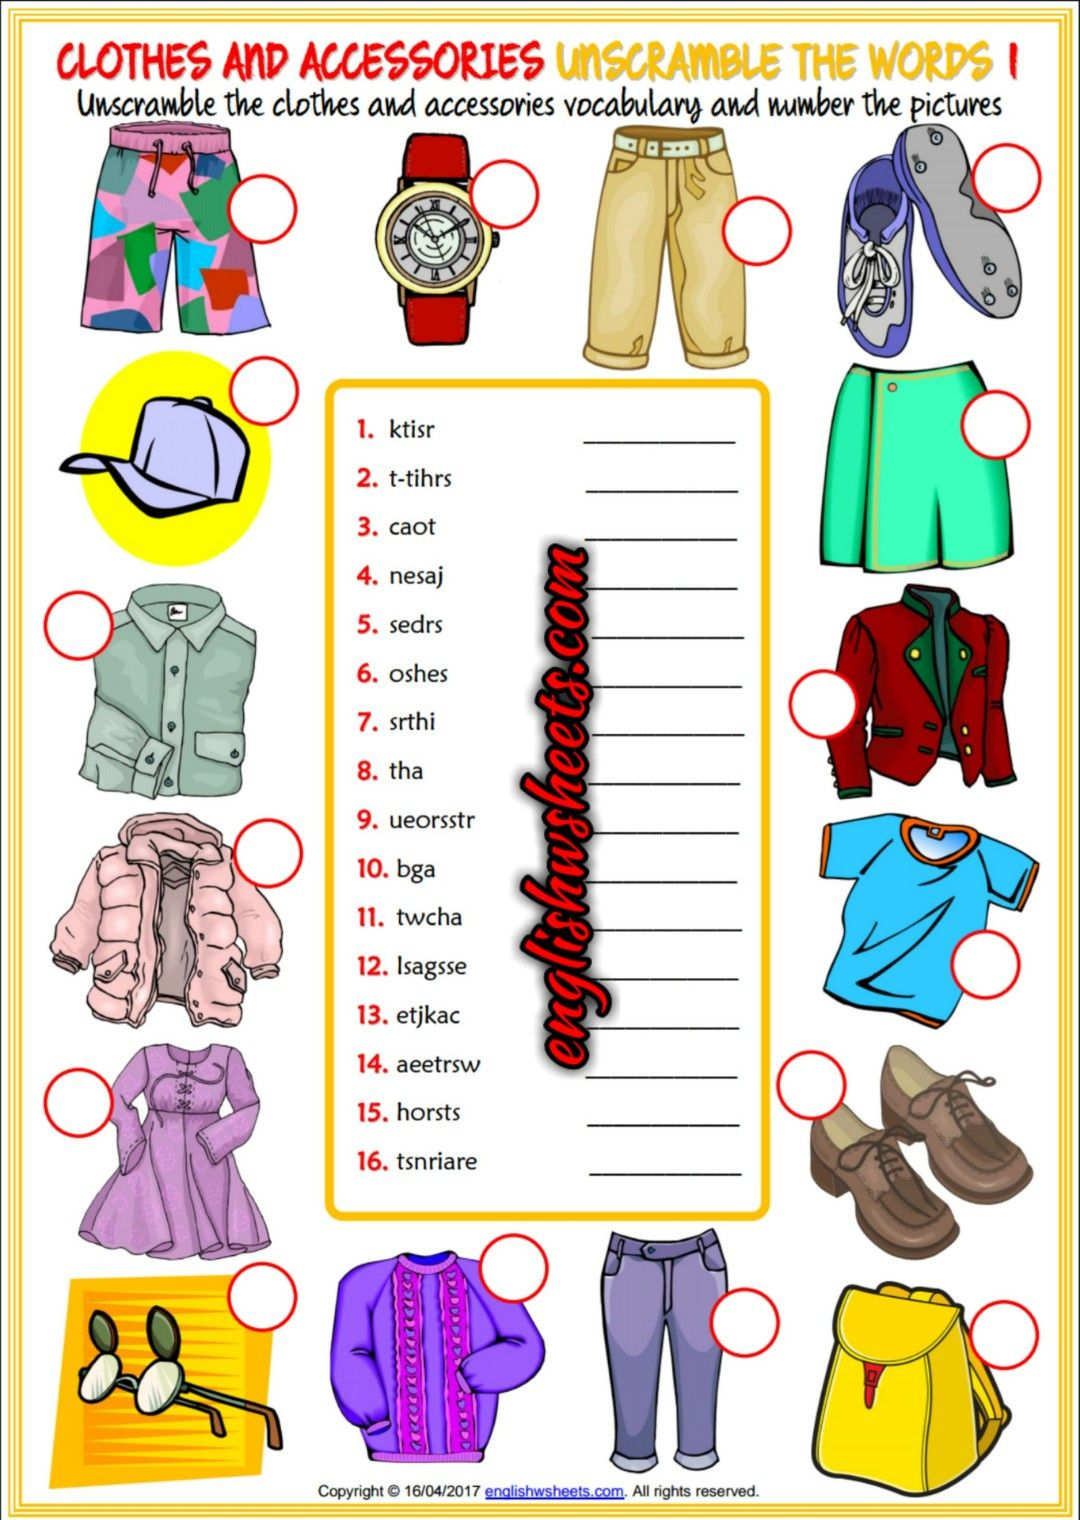 Clothes and Accessories Esl Printable Unscramble the Words ...